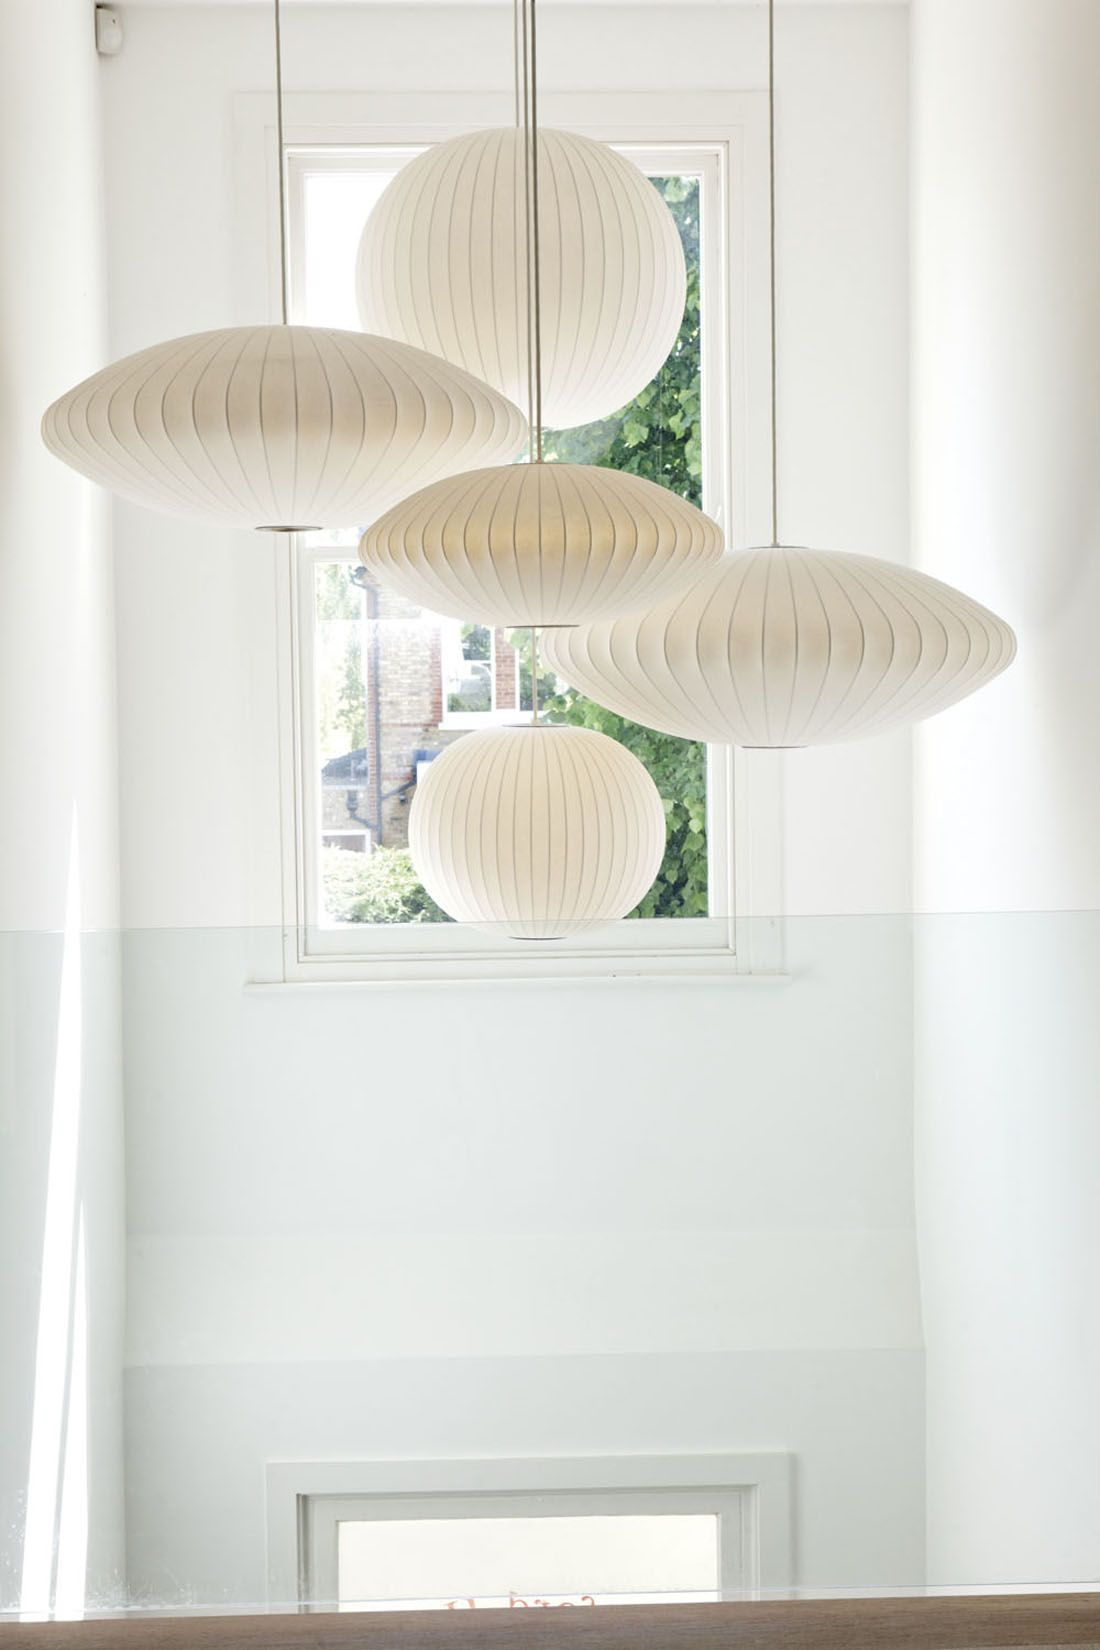 // Bubble Lamps / by George Nelson